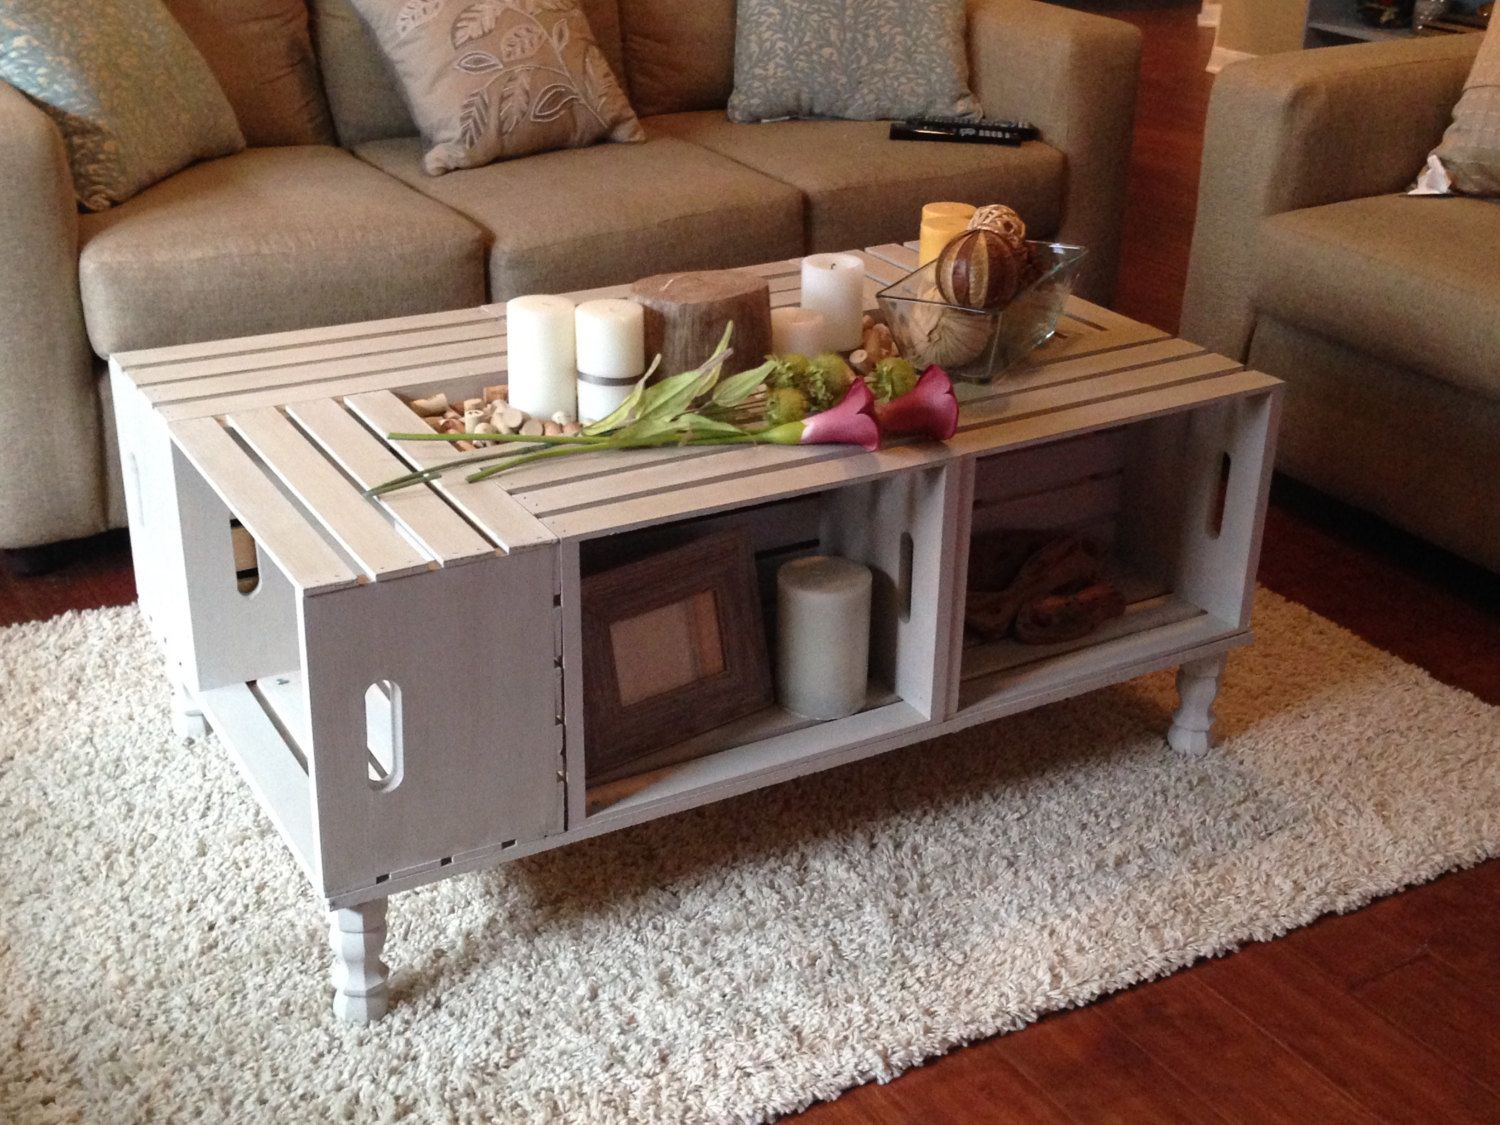 Fernsehmöbel Shabby Chic Shabby Chic Wine Crate Coffee Table Ideen Pinterest Shabby